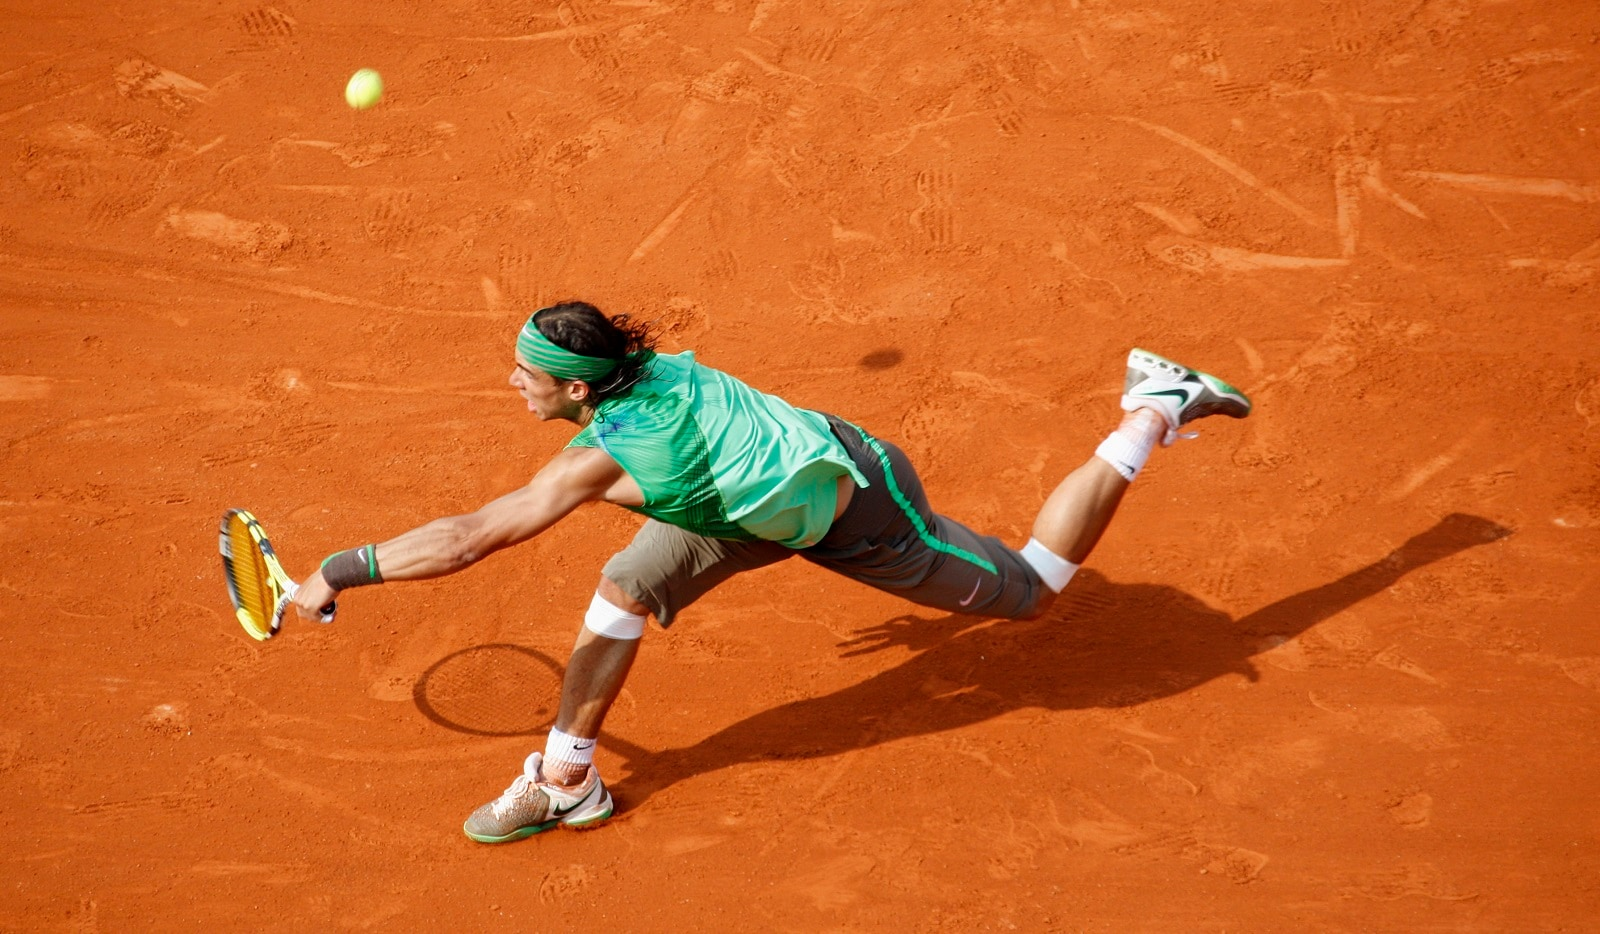 Spain's Rafael Nadal hits a return to Switzerland's Roger Federer during their men final at the French Open tennis tournament at Roland Garros in Paris June 8, 2008. REUTERS/Francois Lenoir (FRANCE) also see: PM1E486193U01